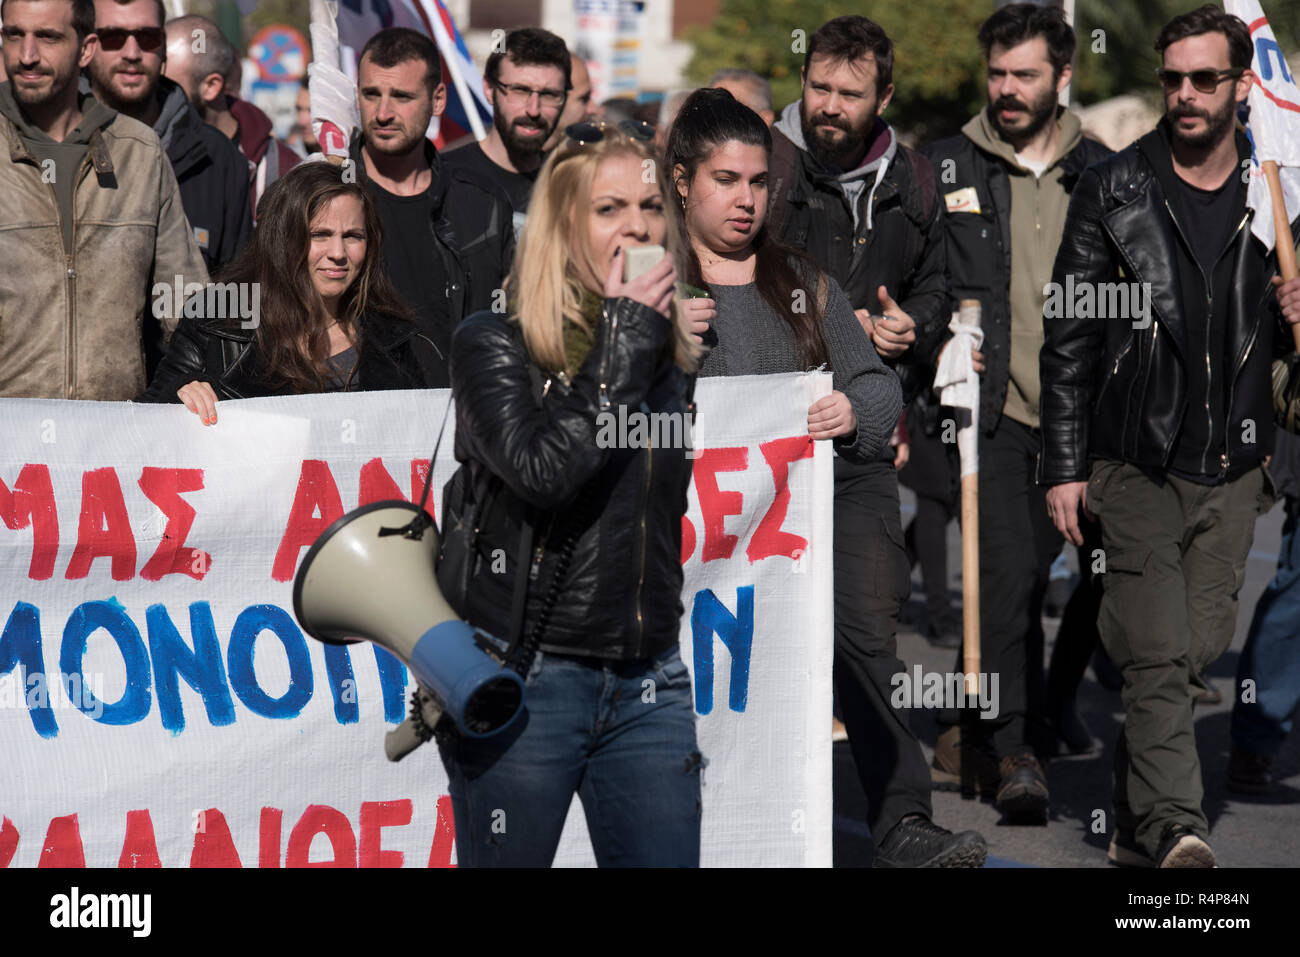 Athens, Greece. 28th Nov 2018. Strikers march holding banners and shouting slogans against labor legislation. Thousands took to the streets participating in a 24 hour general strike organized by private sector unions, protesting against unemployment, low wages and the current labor legislation. Credit: Nikolas Georgiou/Alamy Live News - Stock Image